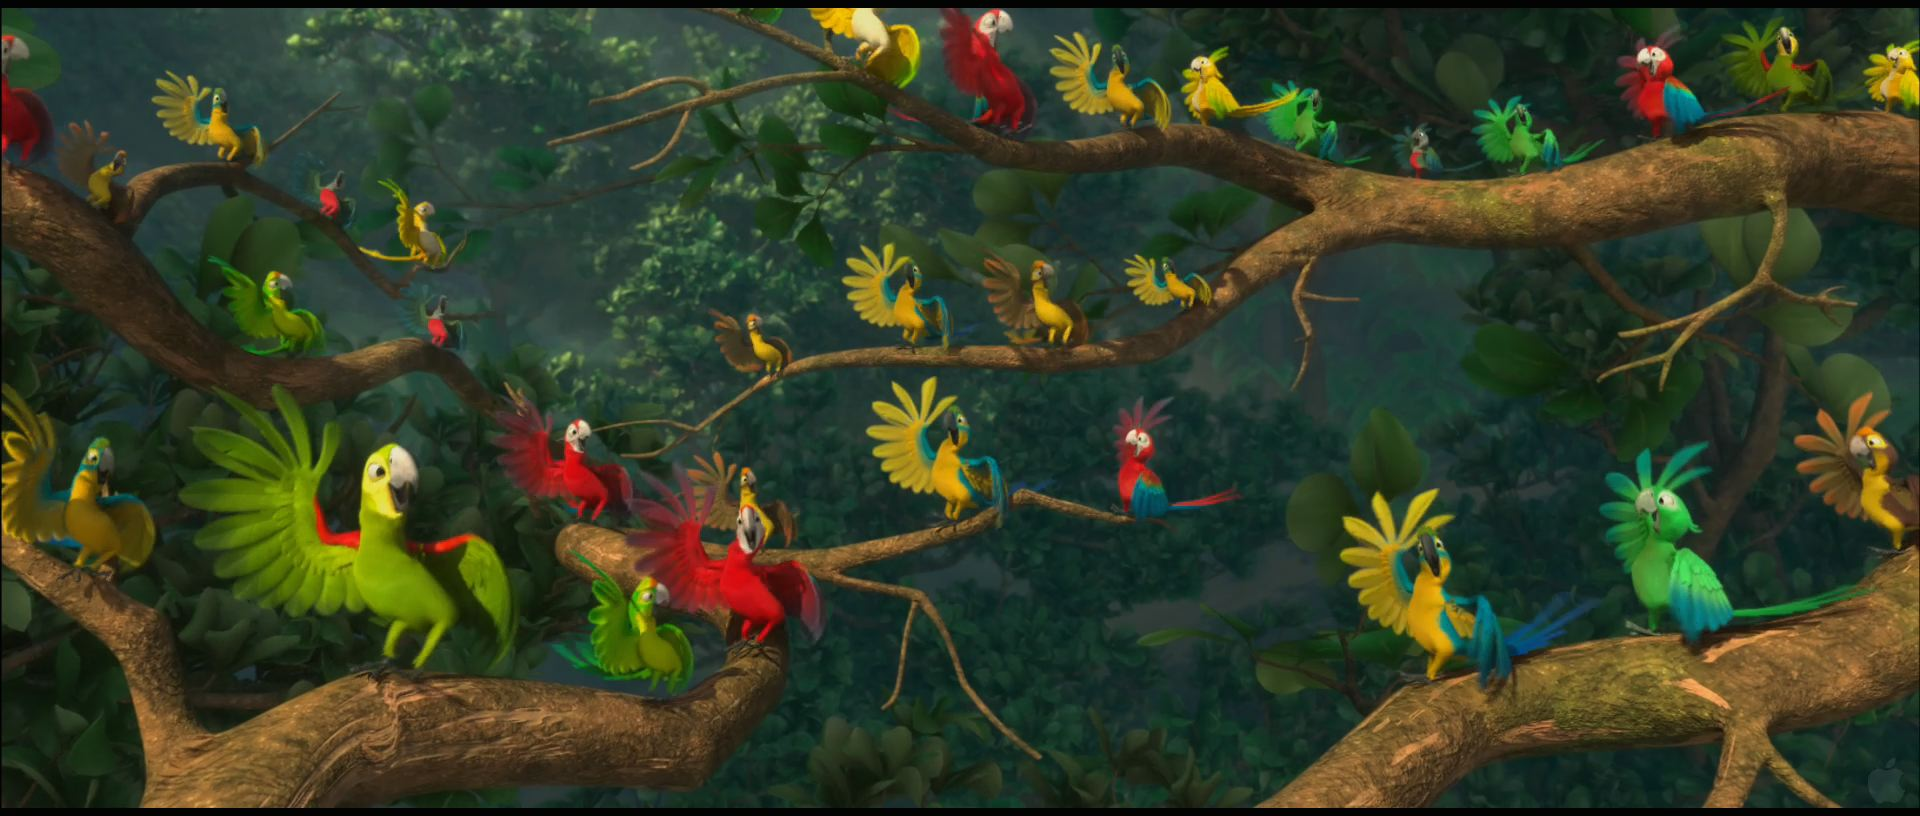 Parrots from rio desktop wallpaper parrots from rio wallpaper click picture for high resolution hd wallpaper voltagebd Choice Image